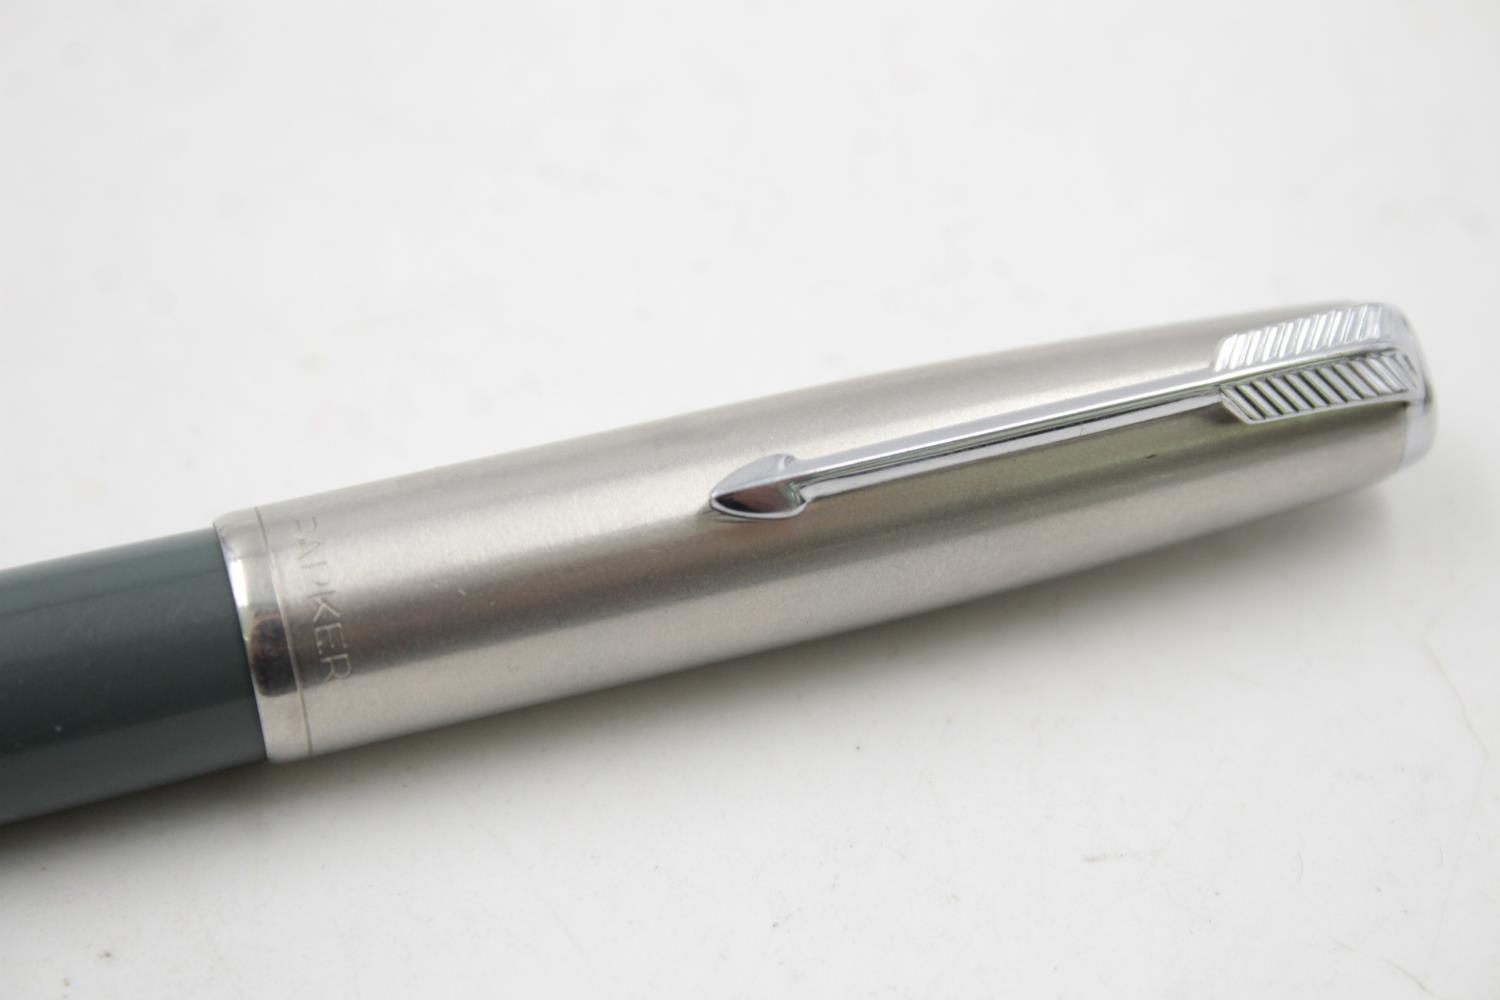 Vintage PARKER 51 Grey FOUNTAIN PEN w/ Brushed Steel Cap WRITING - Image 5 of 7